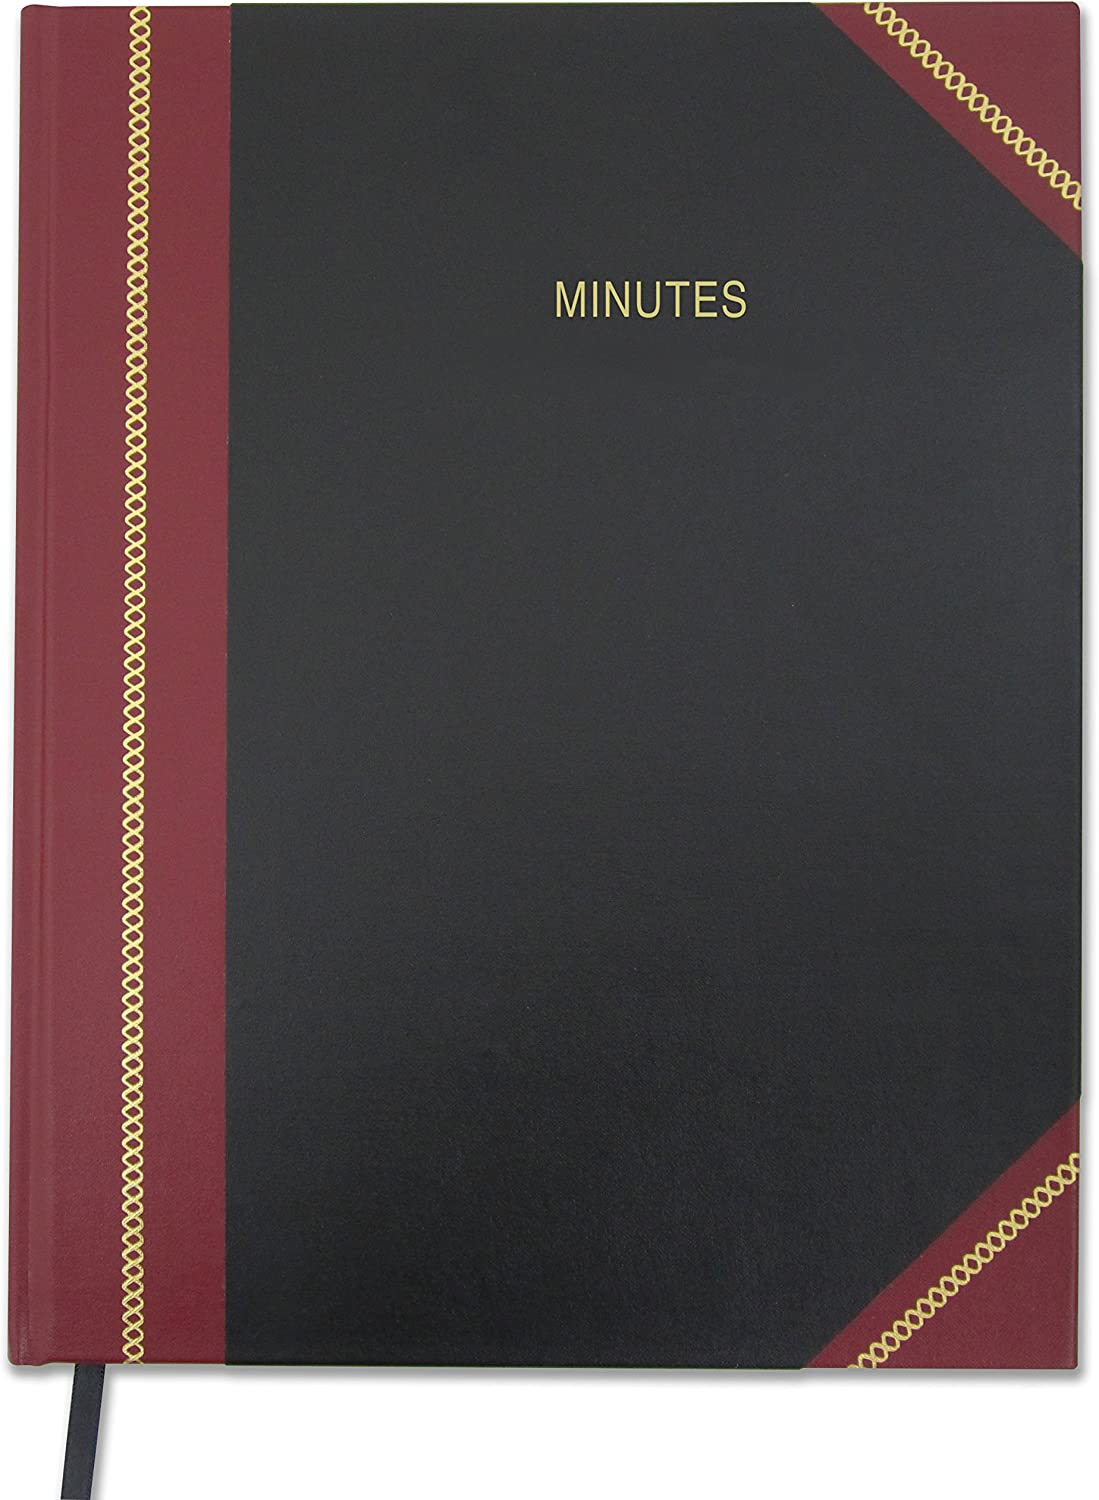 """Minutes Black Ribbon LOG-168-7CS-LKMST75 Smyth Sewn Hardbound BookFactory Minutes Book//Corporate Minutes Book//Board Meeting Minutes LogBook 168 Pages - 8.5 X 11/"""" Black and Burgundy Cover"""